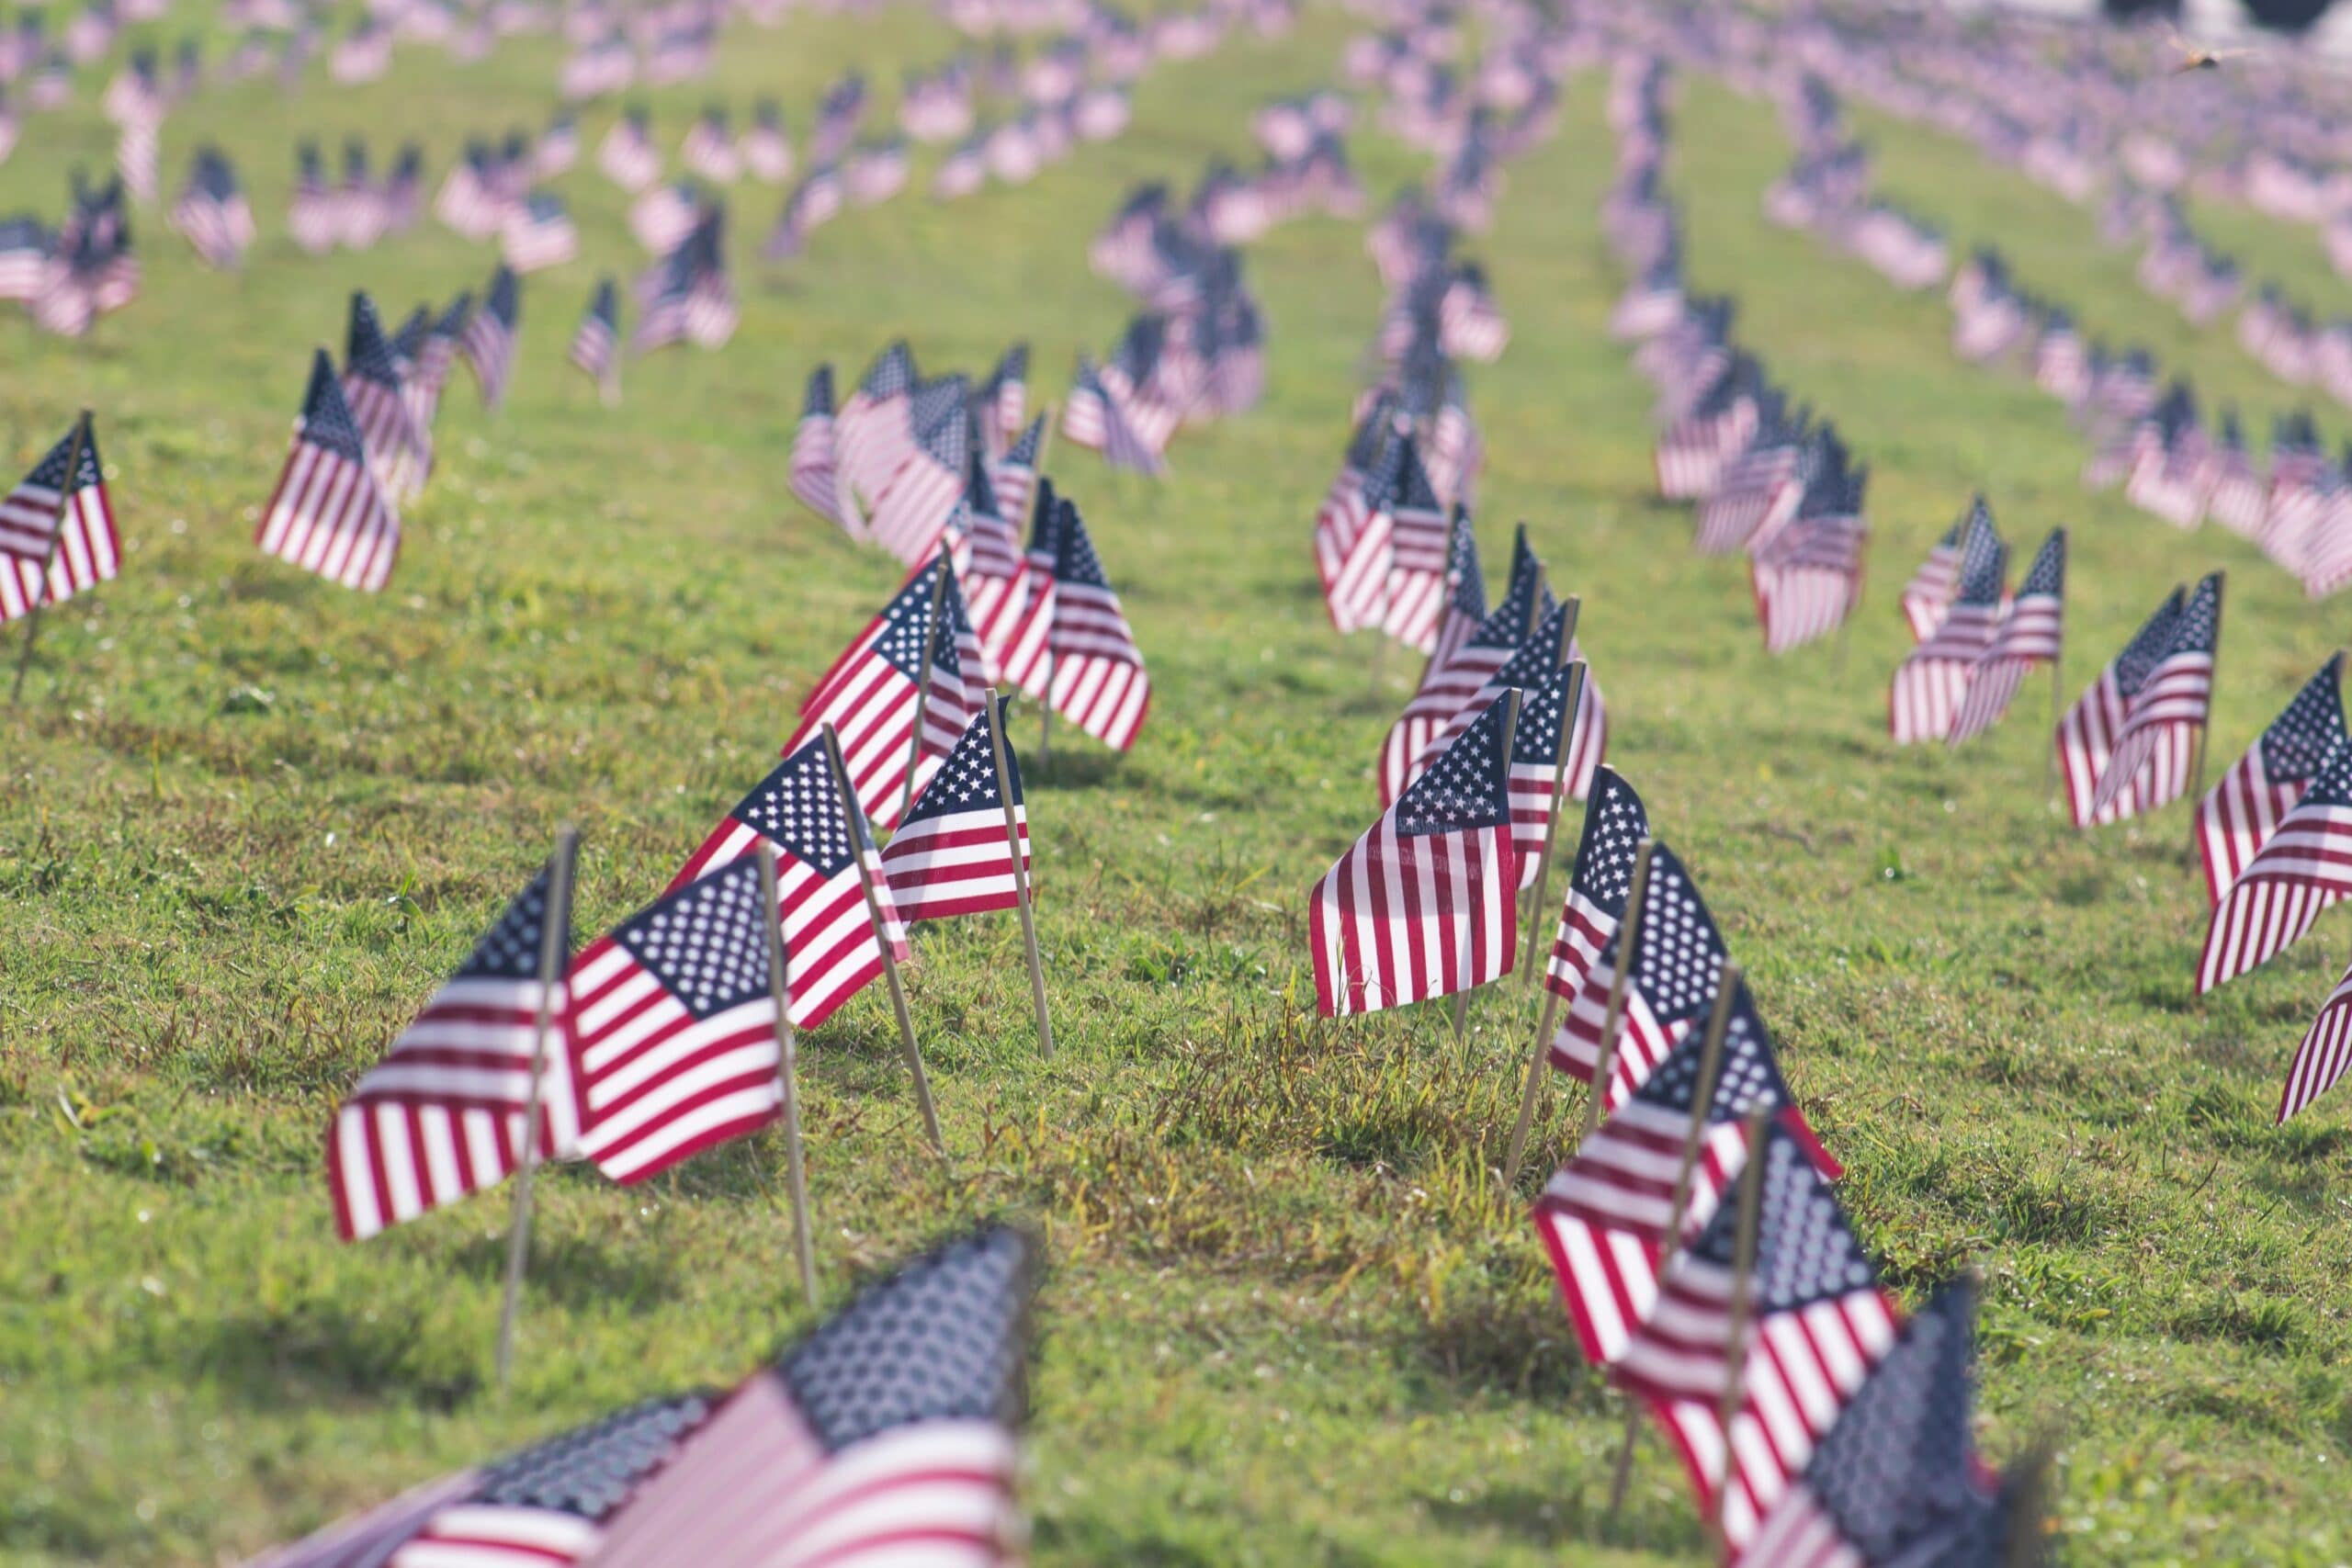 American military flags in ground